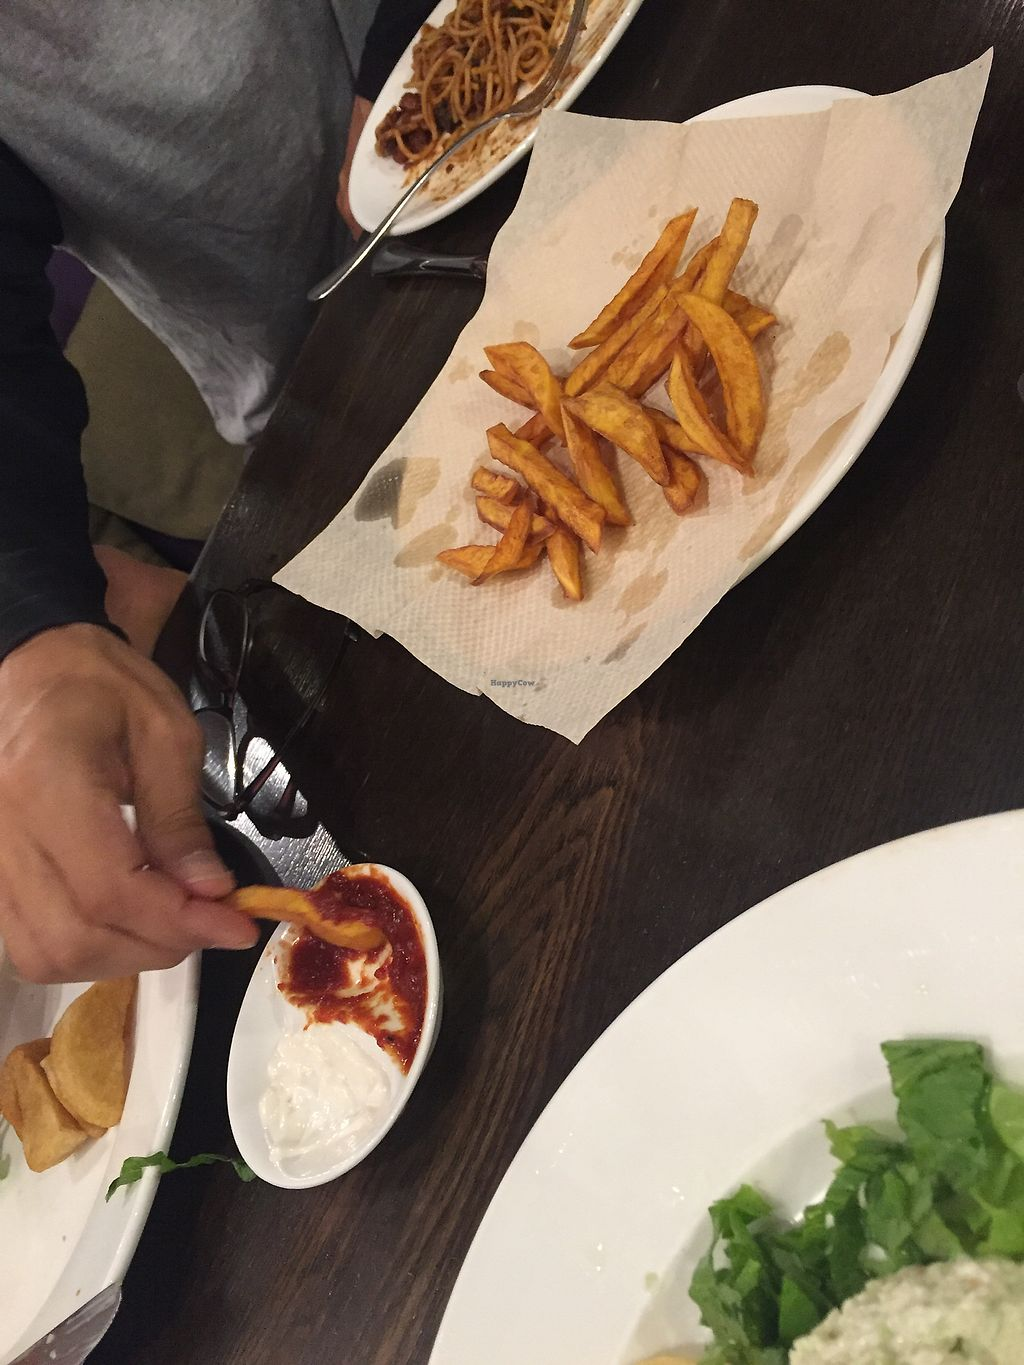 """Photo of CLOSED: The Veggie Table  by <a href=""""/members/profile/H2OAddict"""">H2OAddict</a> <br/>Sweet potato fries with vegan mayo and homemade ketchup <br/> August 20, 2017  - <a href='/contact/abuse/image/26742/294606'>Report</a>"""